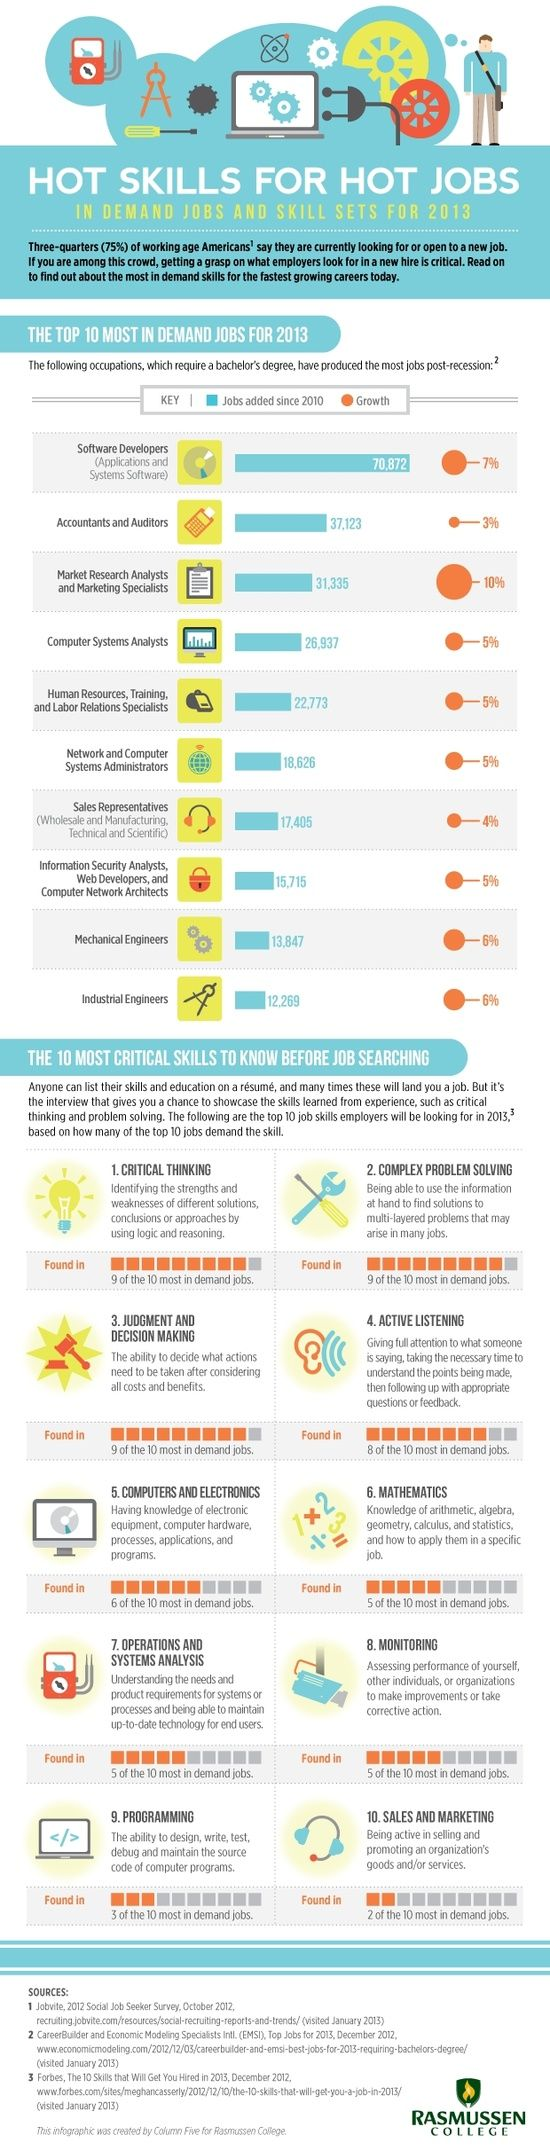 Hot Skills For Hot Jobs In 2013 #Infographic